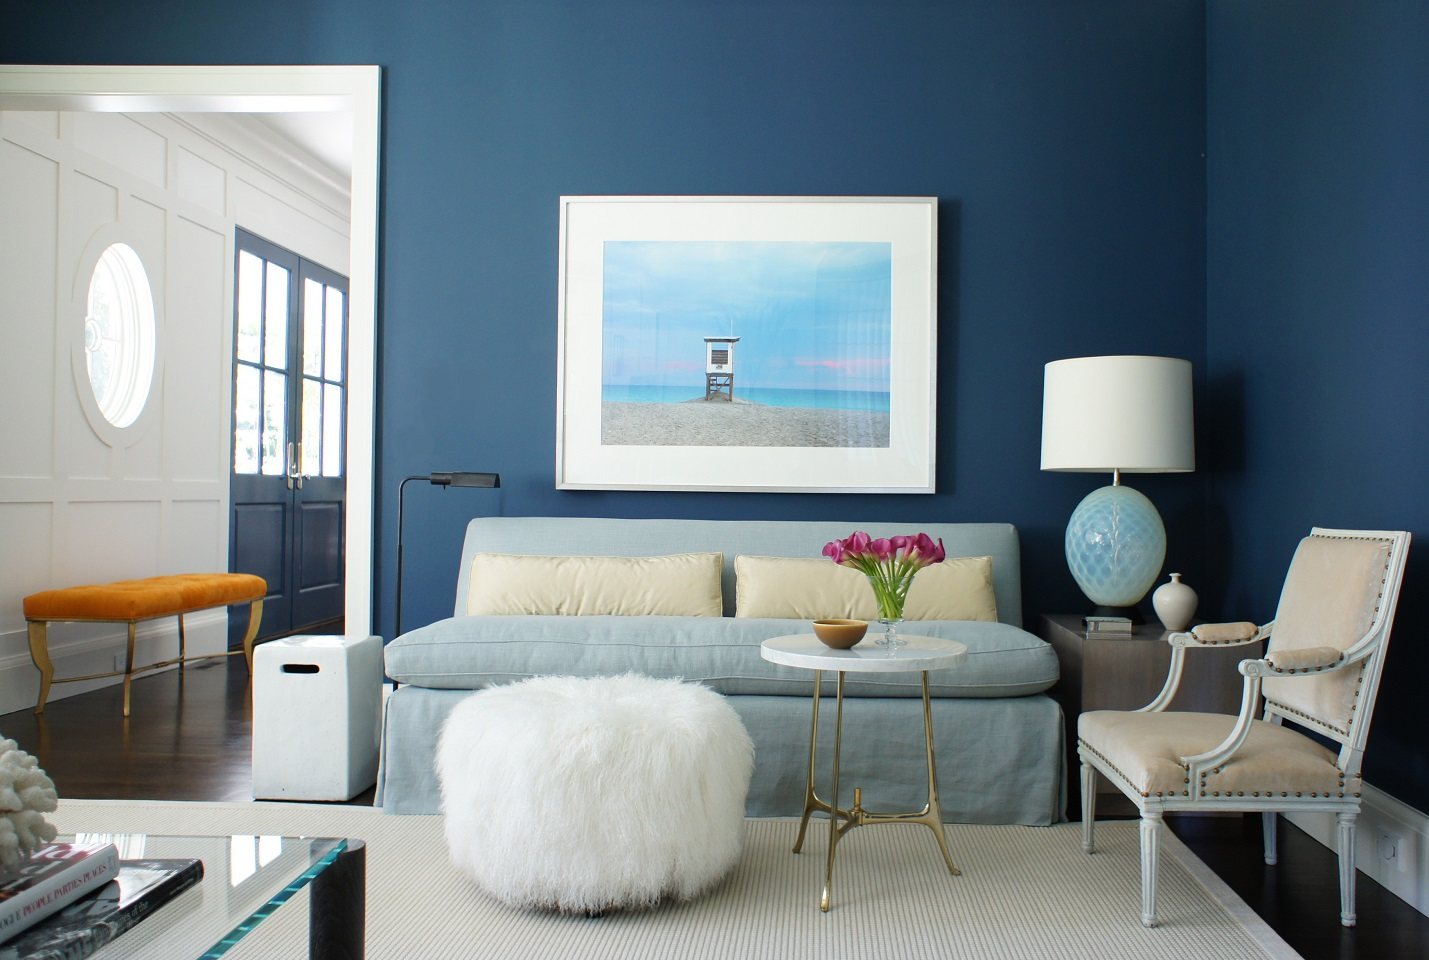 29 Living Room Design Ideas With Photos: Ideas For Blue Painted Accent Walls